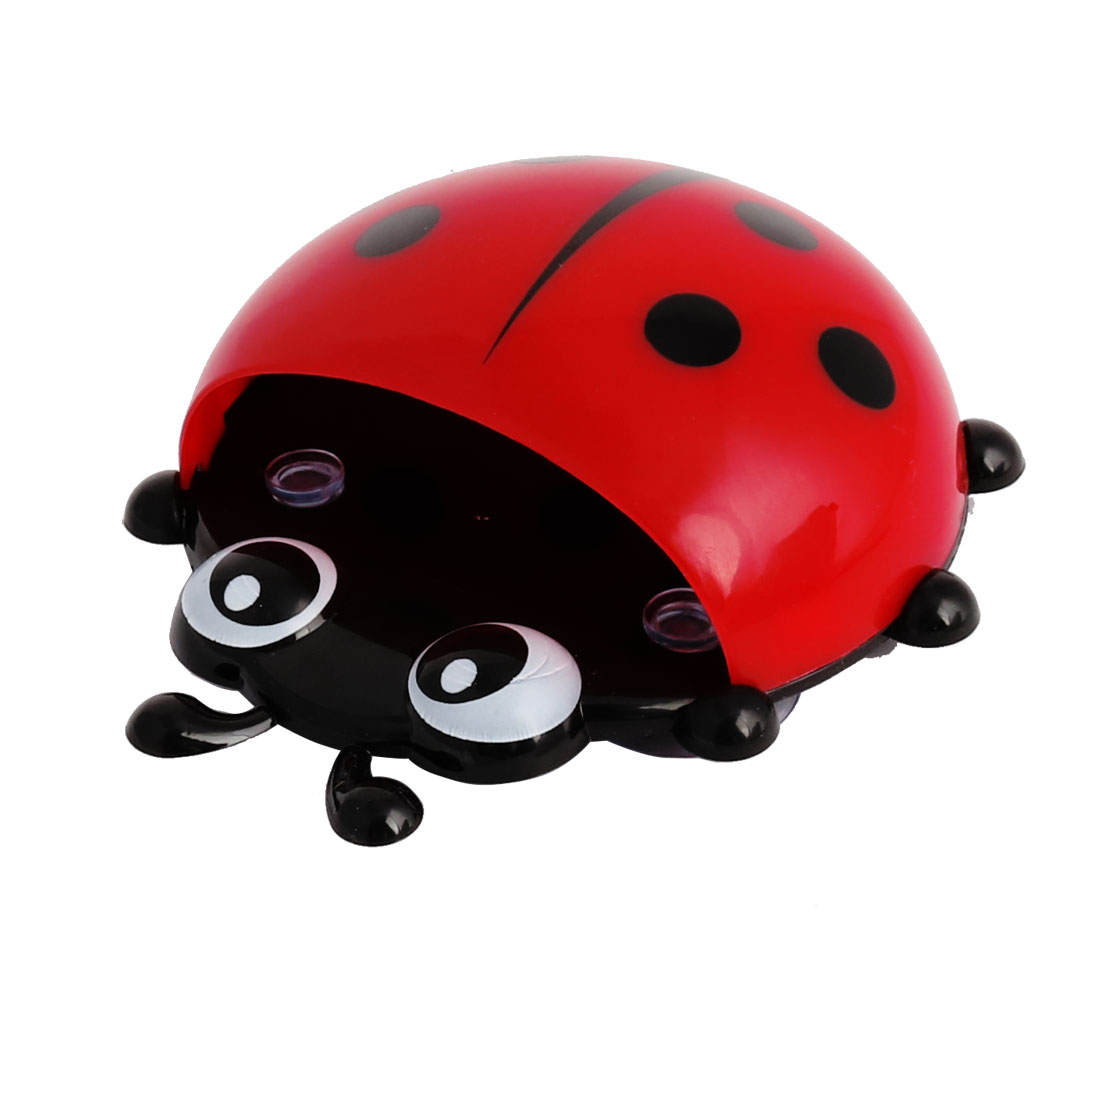 Bathroom Plastic Ladybird Pattern Suction Cup Toothbrush Holder Organizer Red